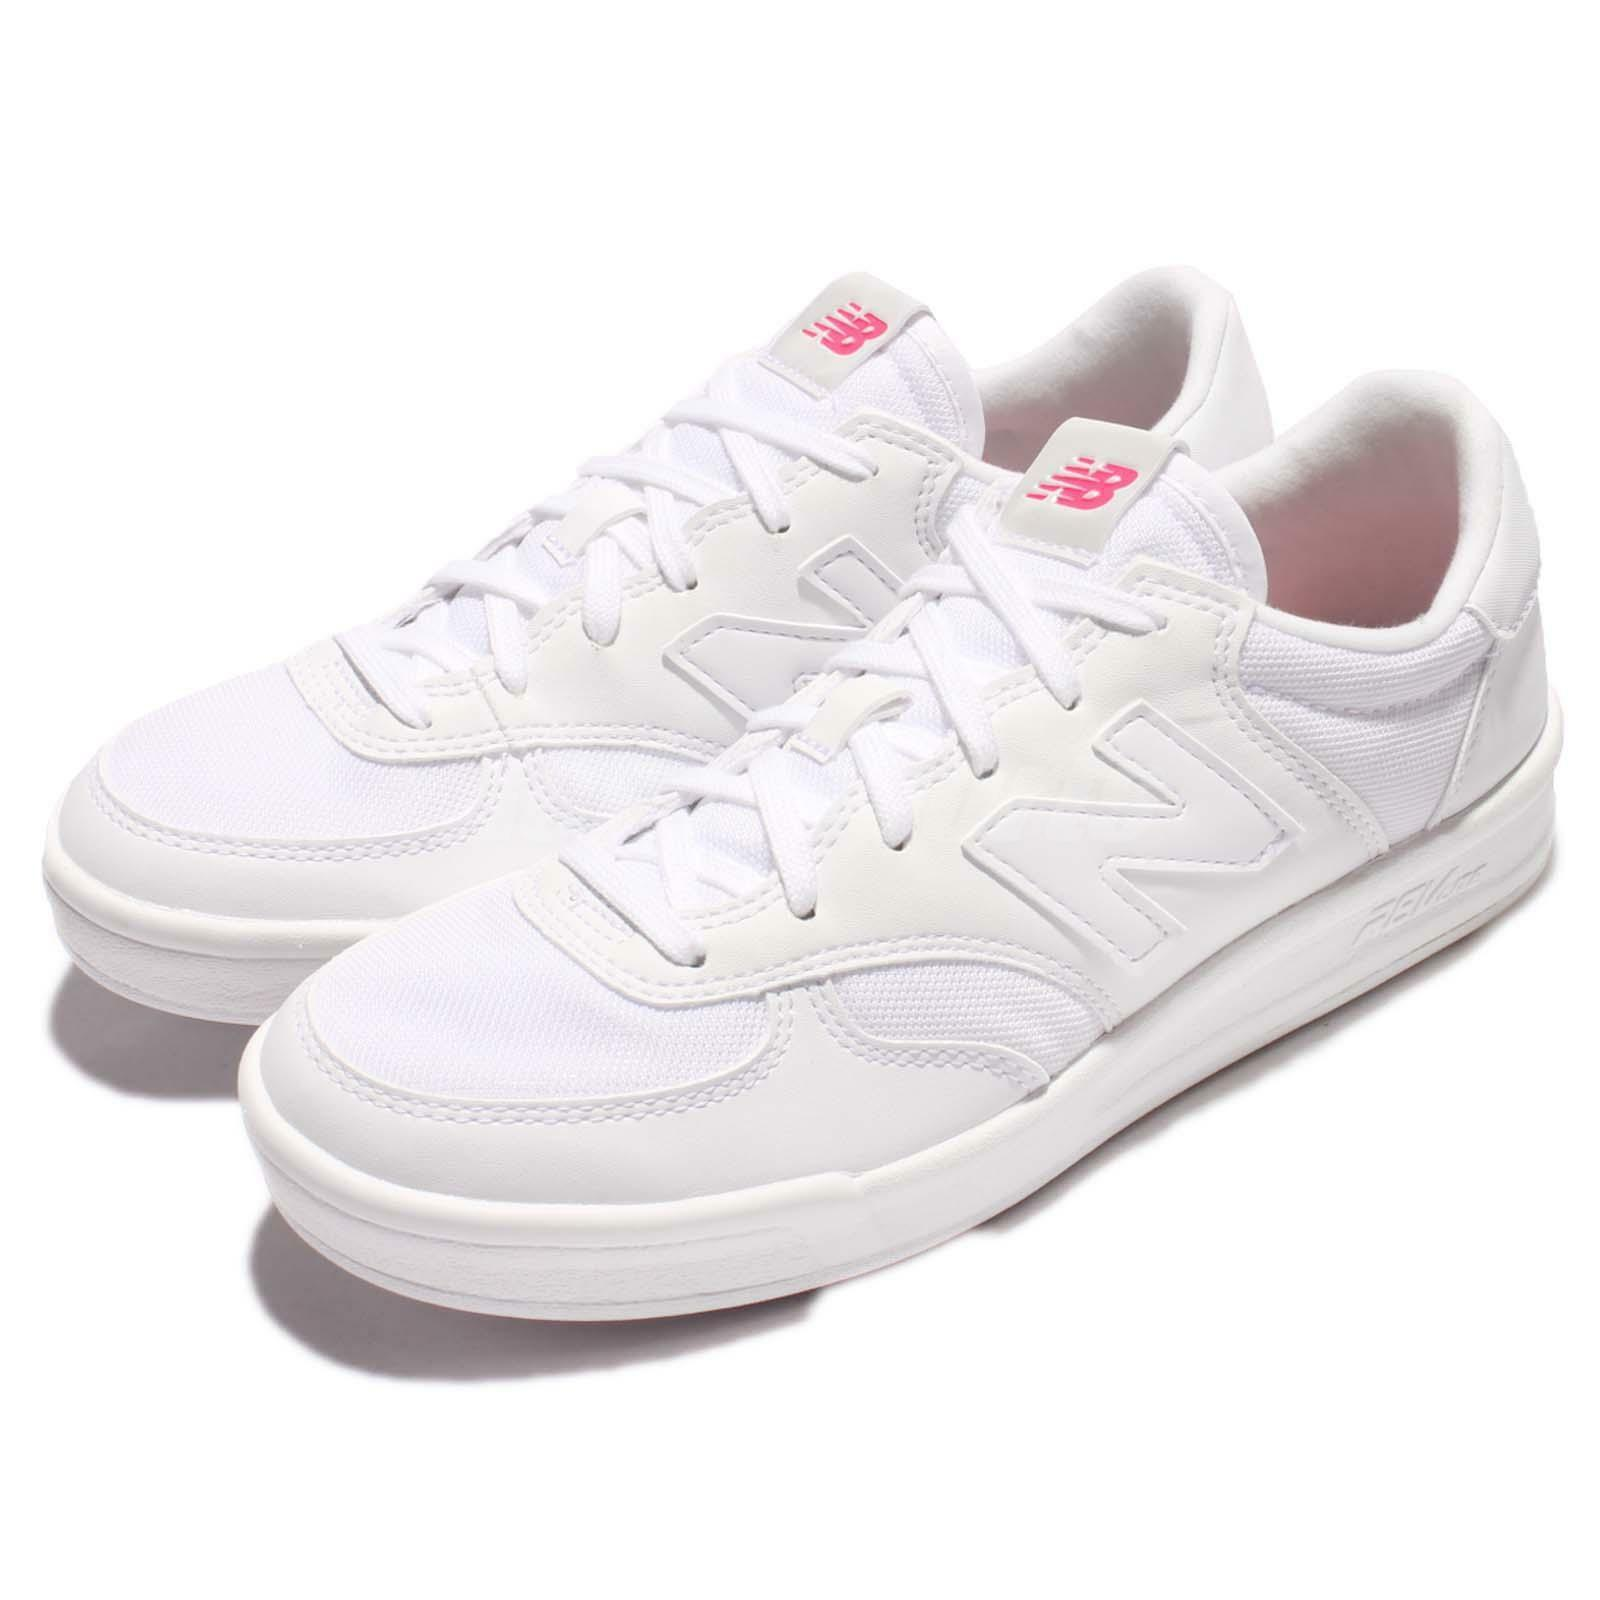 Wide White Pink Women Classic Shoes Sneakers WRT300CGD by New Balance, available on ebay.com for $104 Kaia Gerber Shoes Exact Product